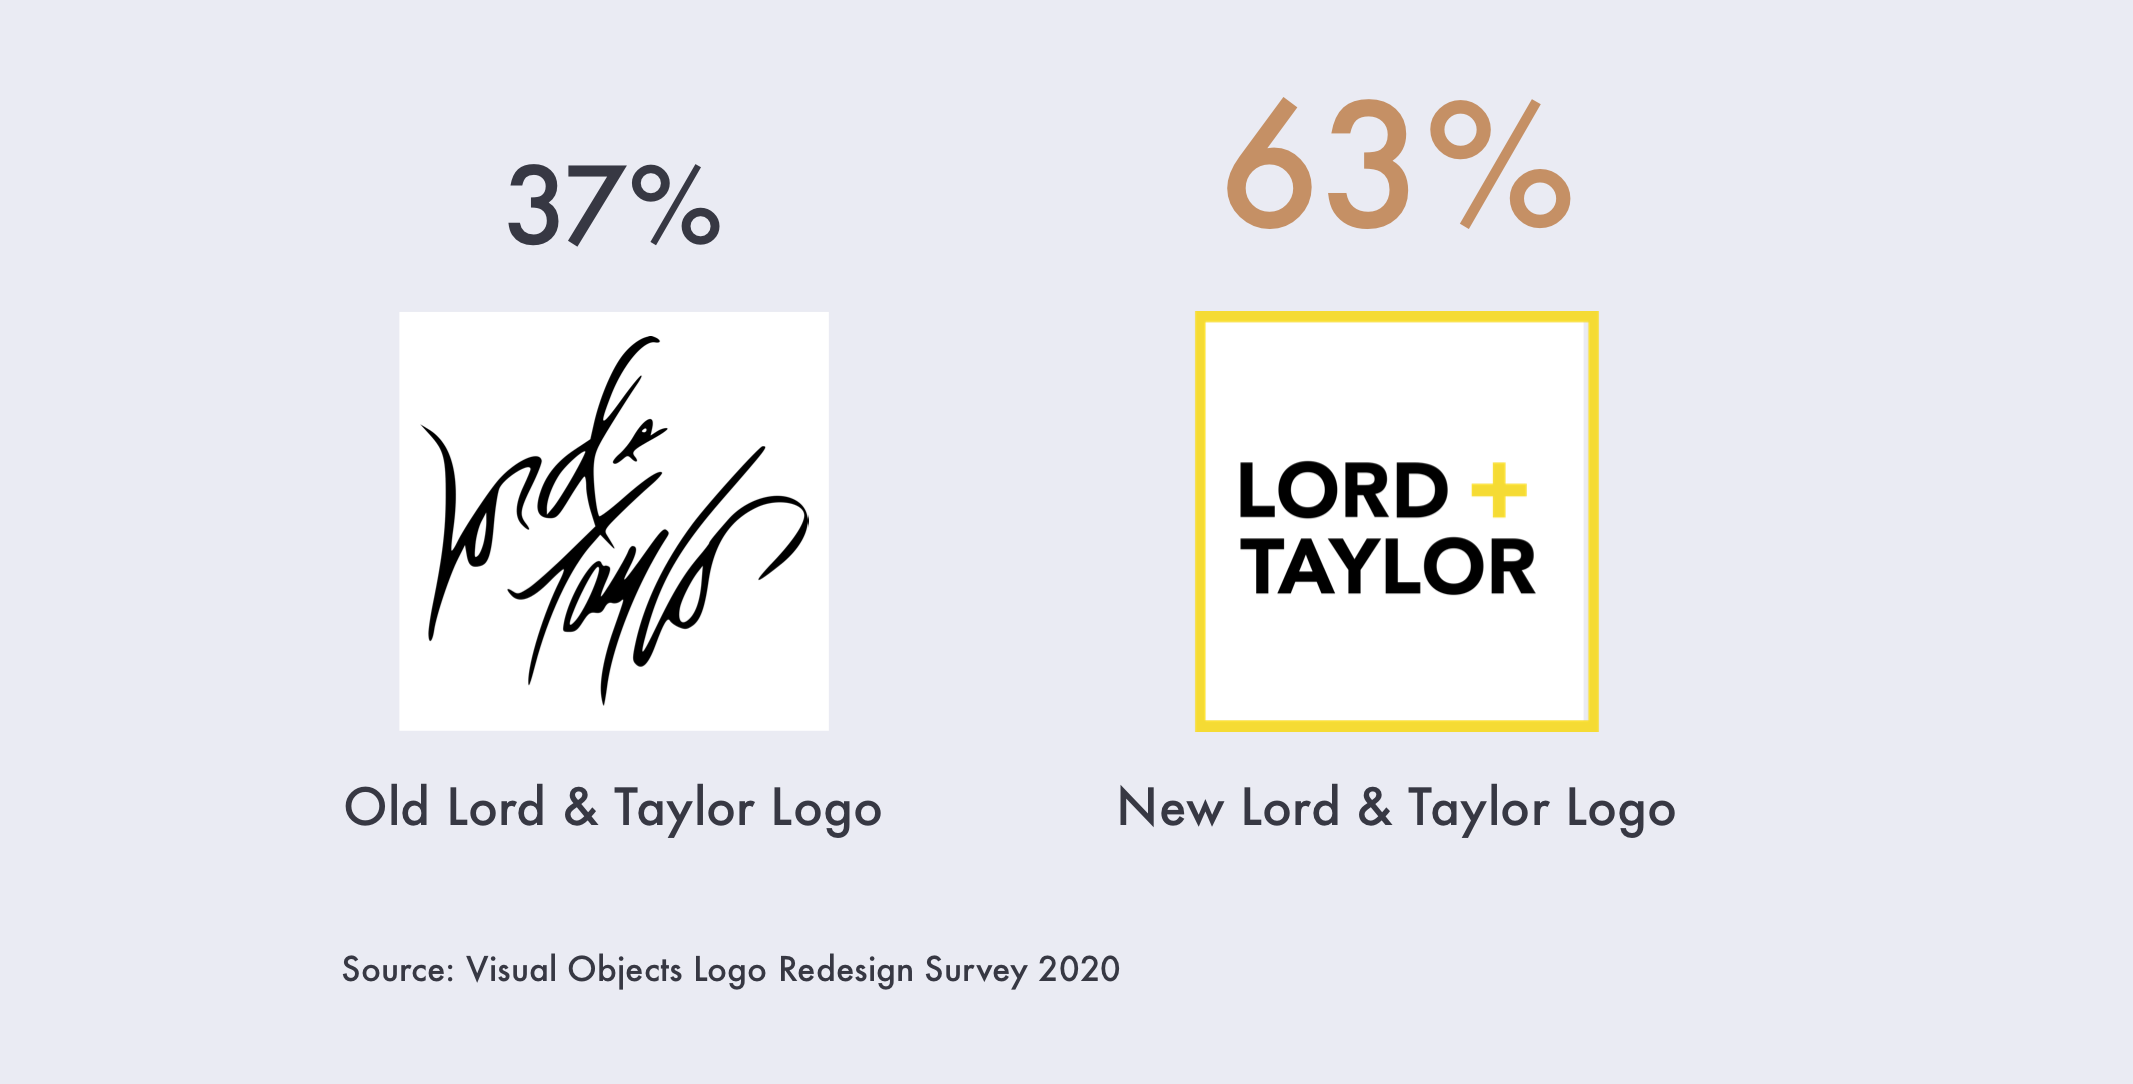 63% prefer new lord and taylor logo